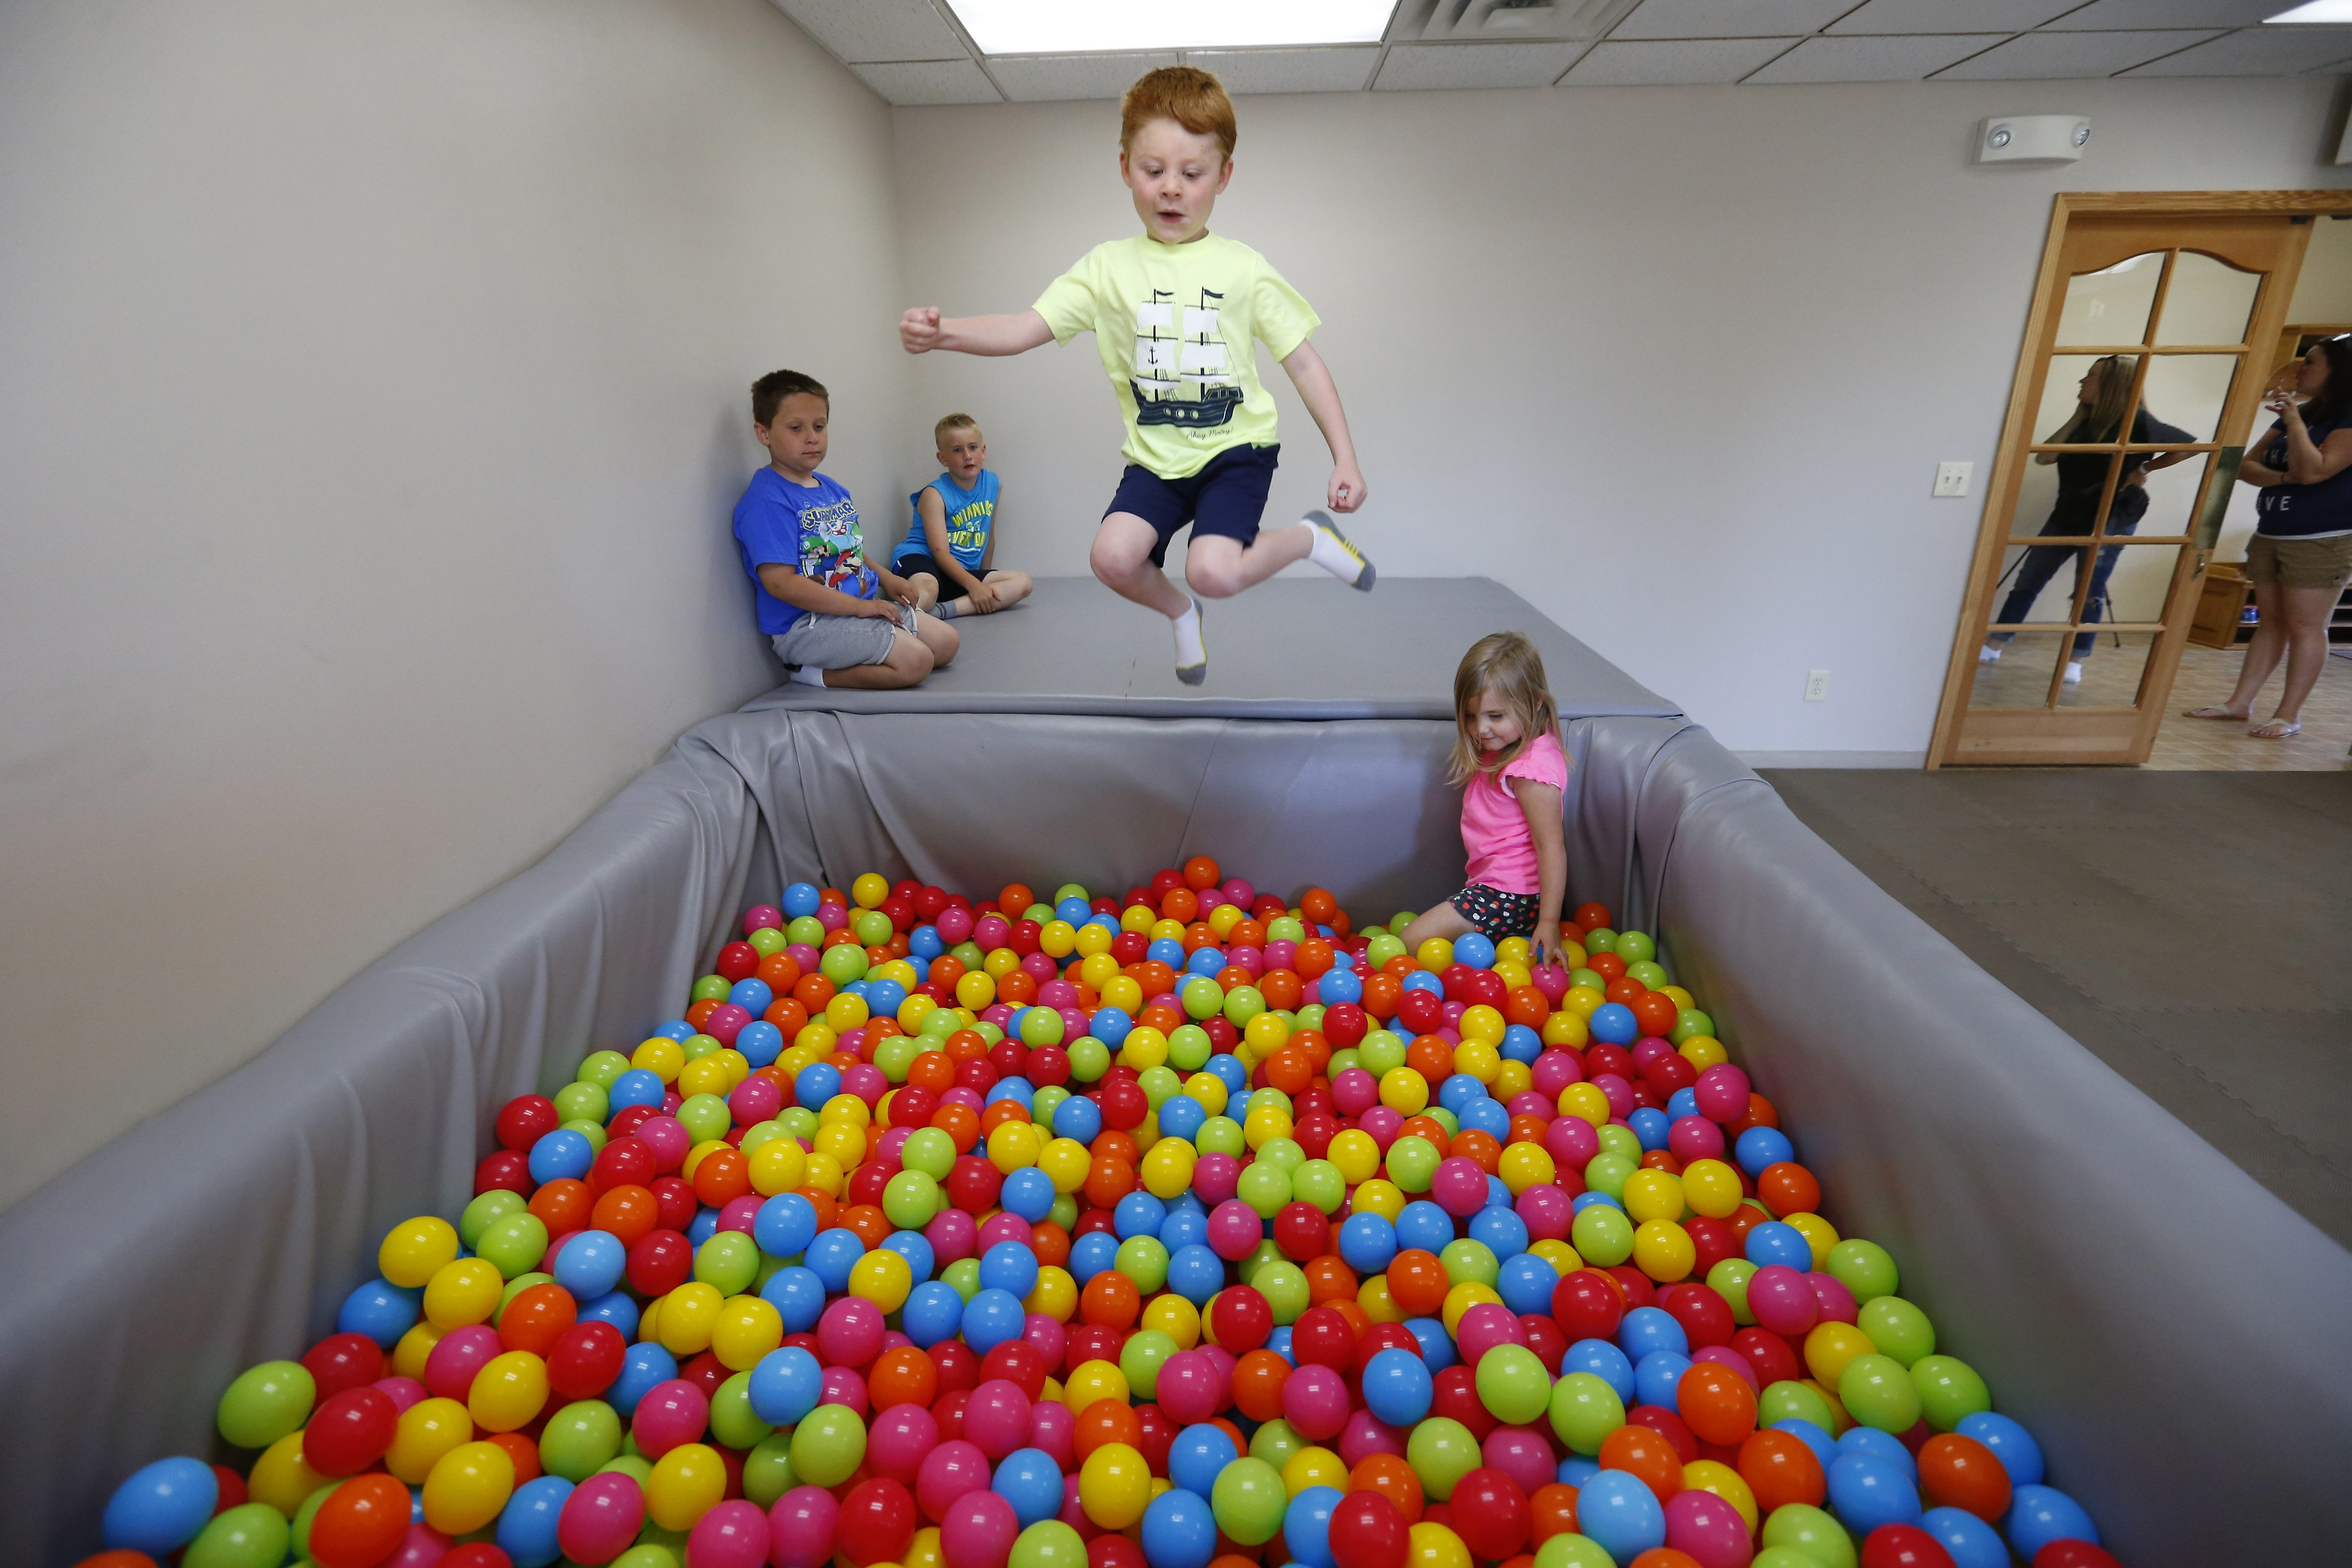 Joey Barile jumps into a pool of balls in the indoor play area at Sensational Fun in Orchard Park on Friday.    (Mark Mulville/Buffalo News)